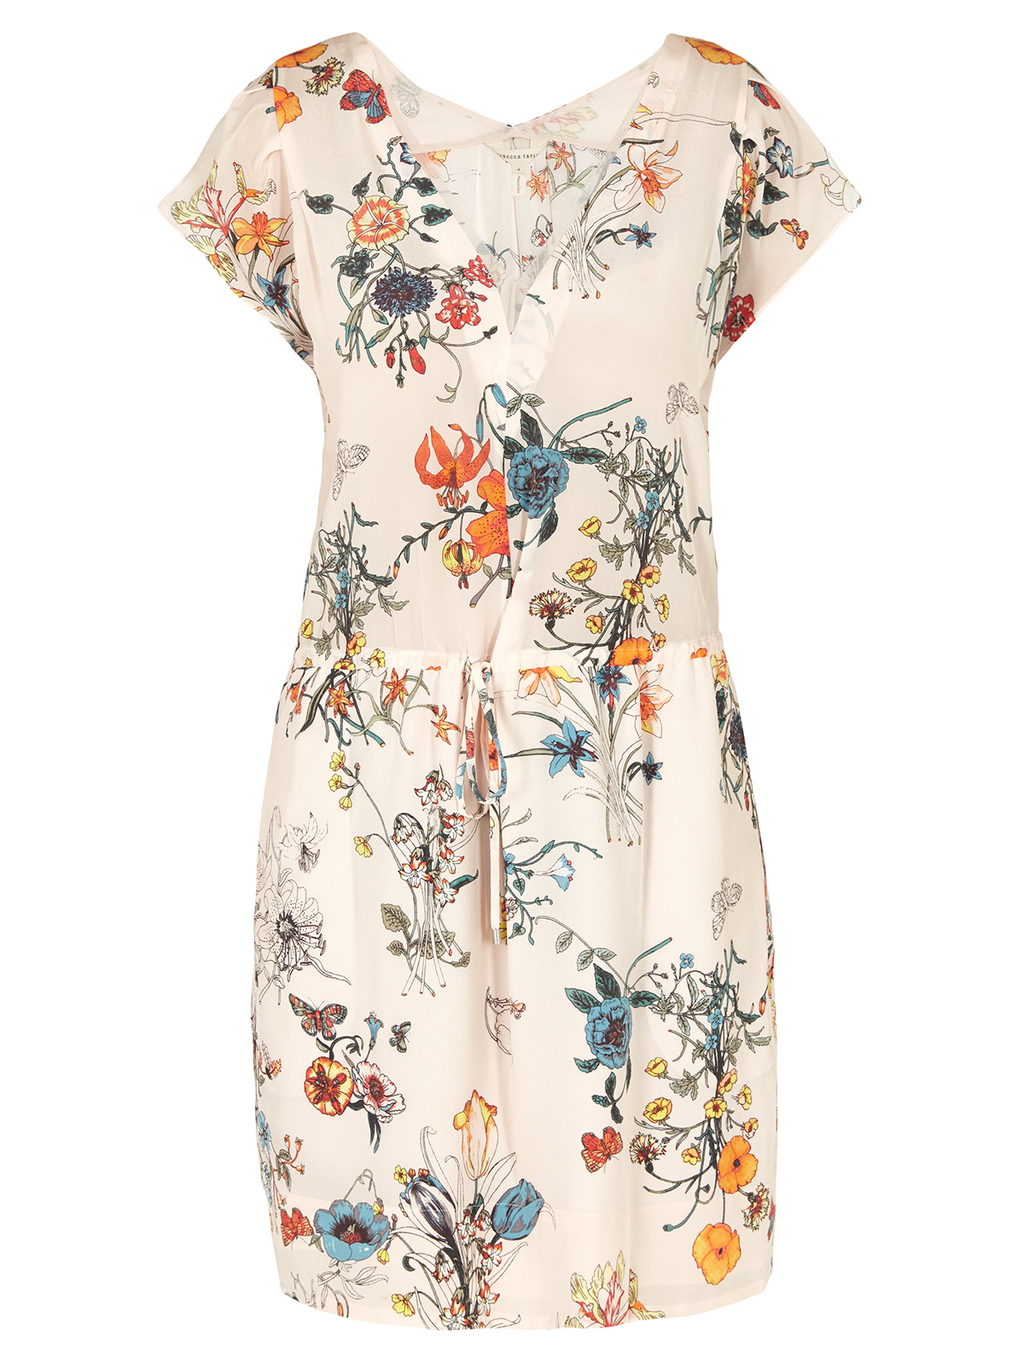 Sleeveless Meadow V Neck Dress - neckline: v-neck; predominant colour: ivory/cream; secondary colour: bright orange; occasions: evening; length: just above the knee; fit: fitted at waist & bust; style: fit & flare; fibres: silk - 100%; sleeve length: short sleeve; sleeve style: standard; pattern type: fabric; pattern size: big & busy; pattern: florals; texture group: other - light to midweight; multicoloured: multicoloured; season: s/s 2016; wardrobe: event